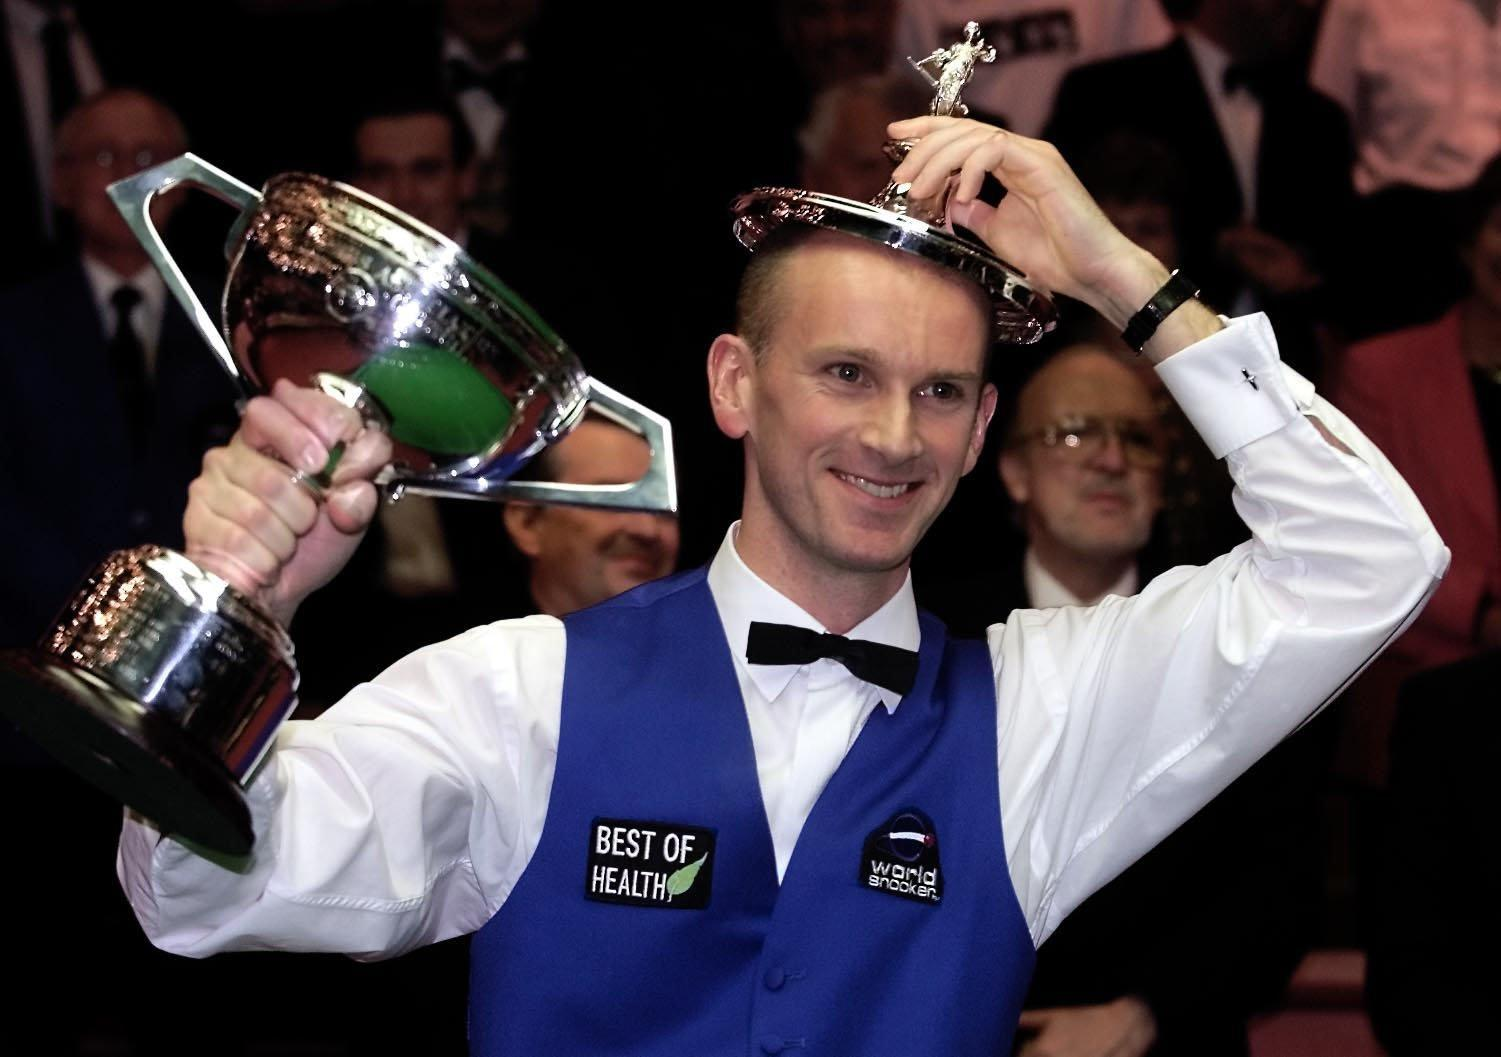 Former world snooker champion Peter Ebdon swaps cue balls for crystal balls… as he becomes a professional healer